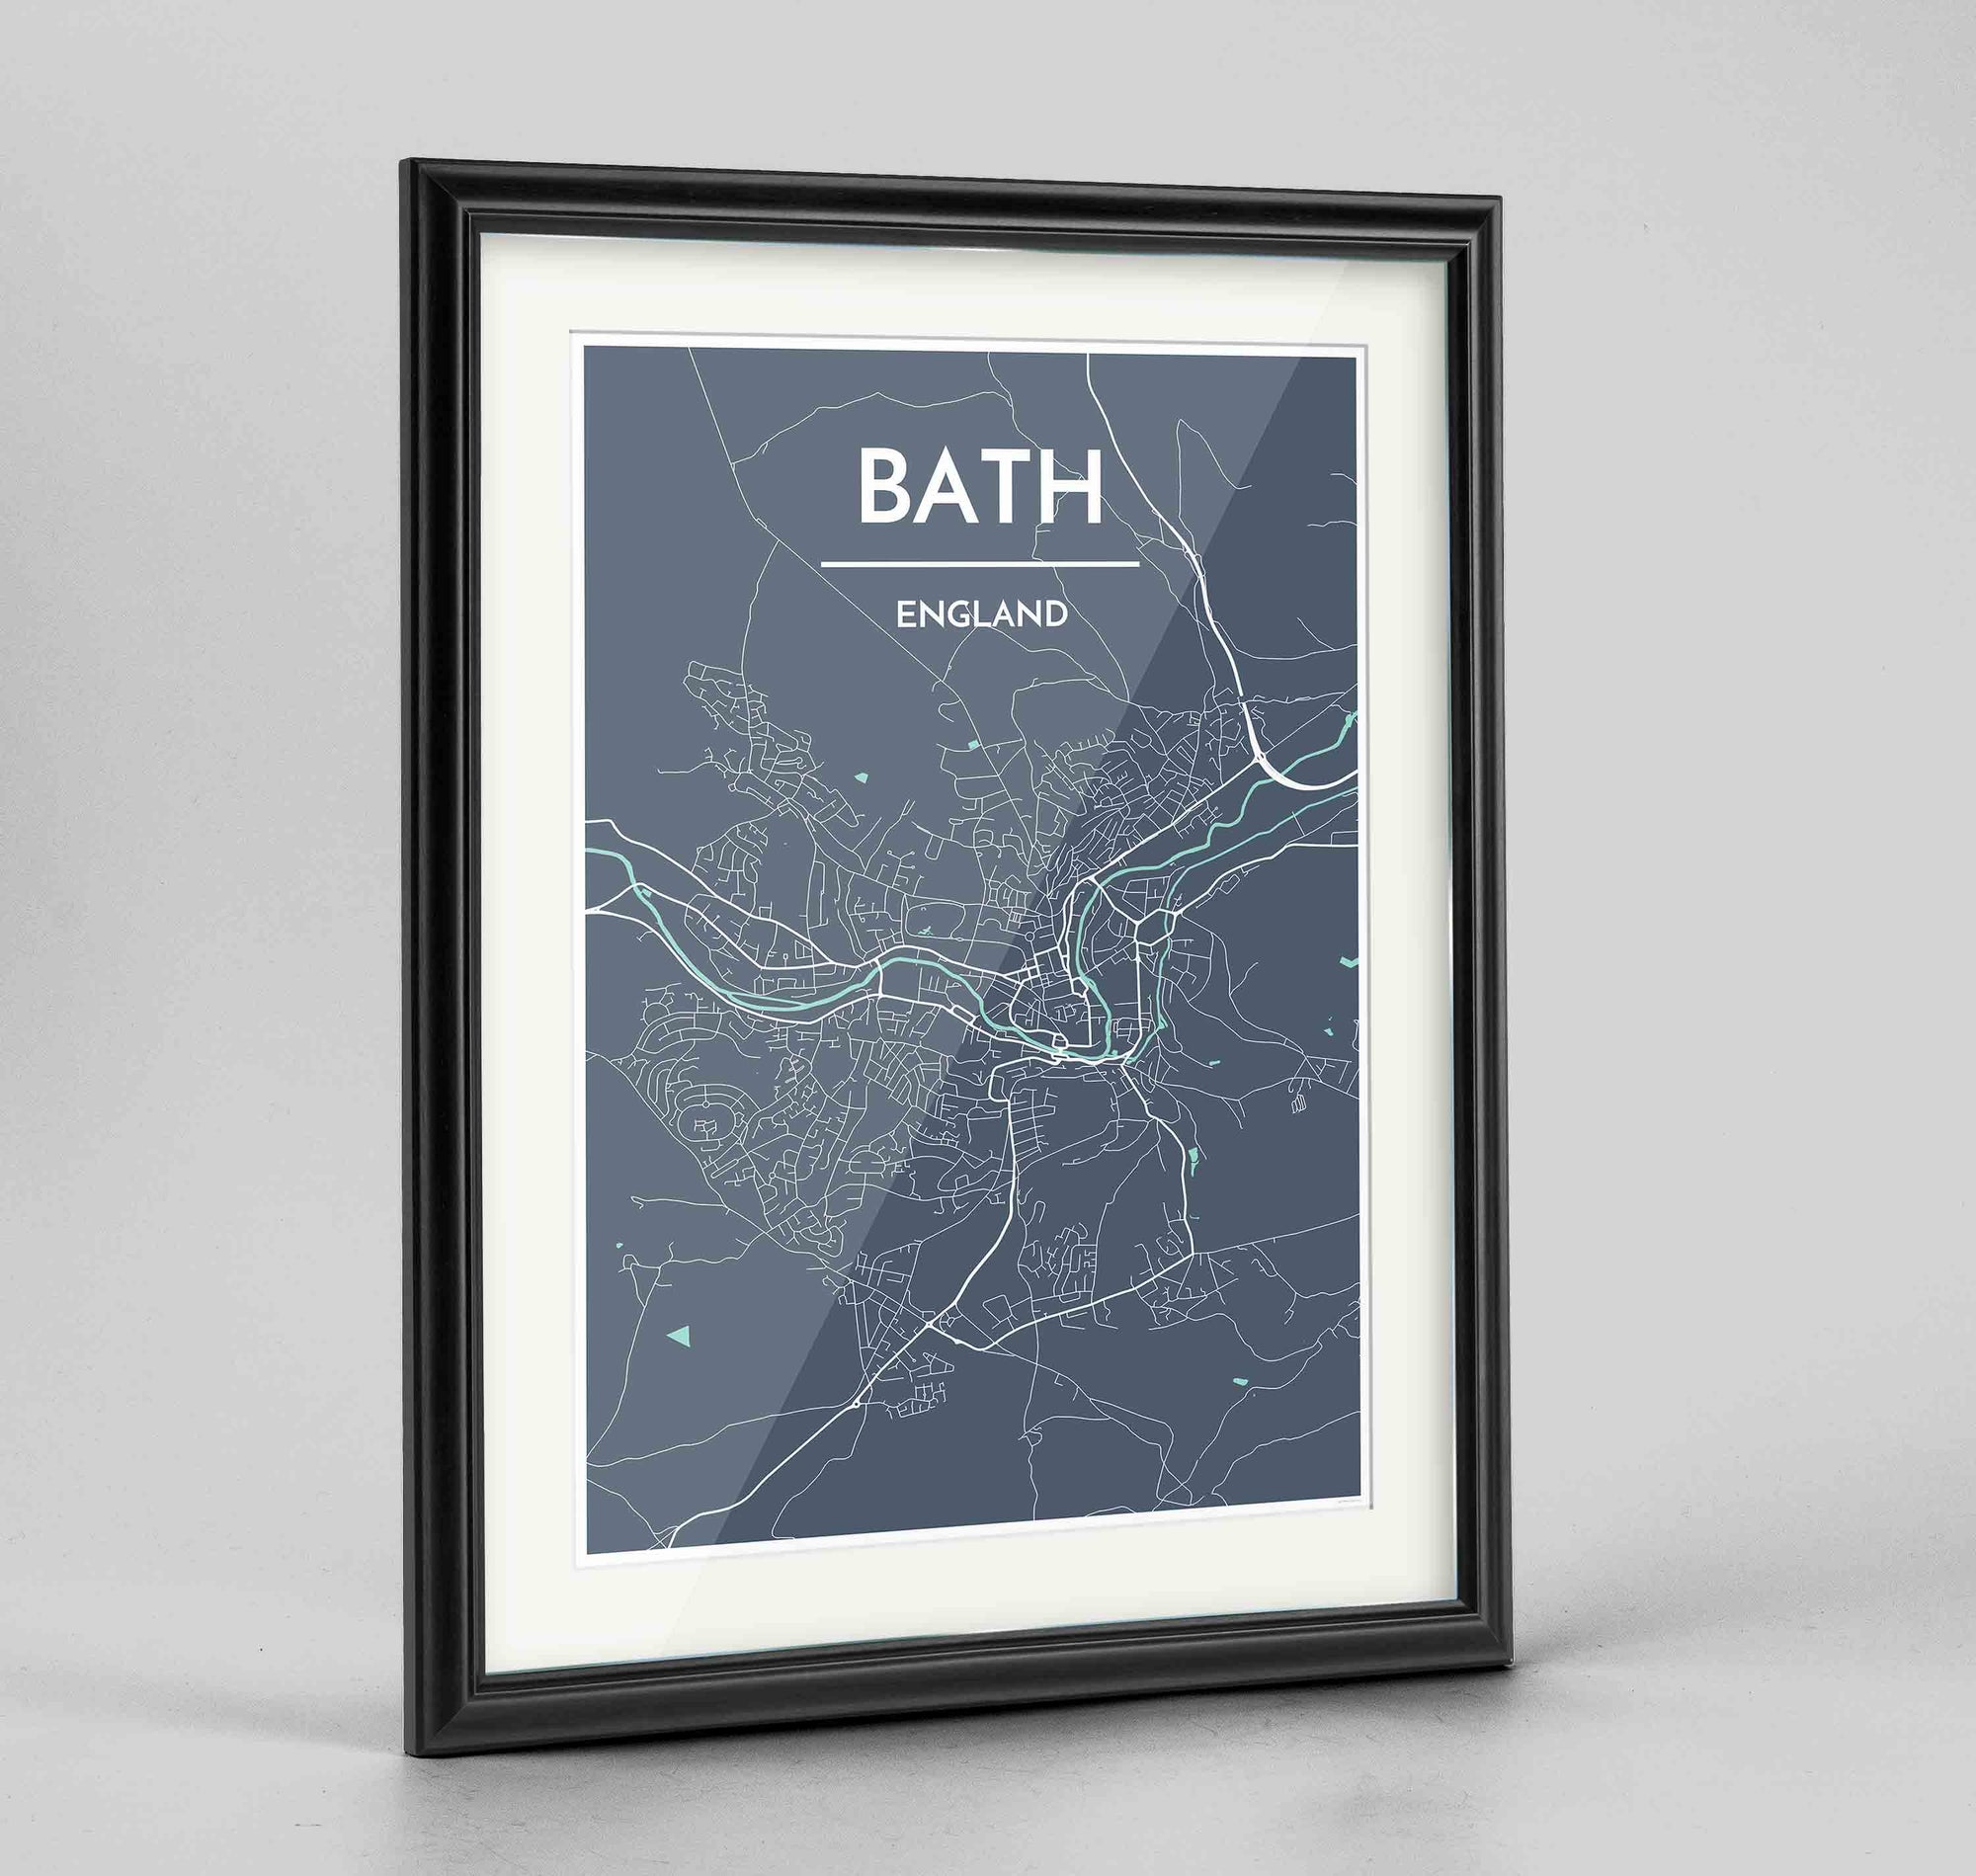 Framed Bath City Map Art Prints High Quality Custom Made Framed Art Point Two Design